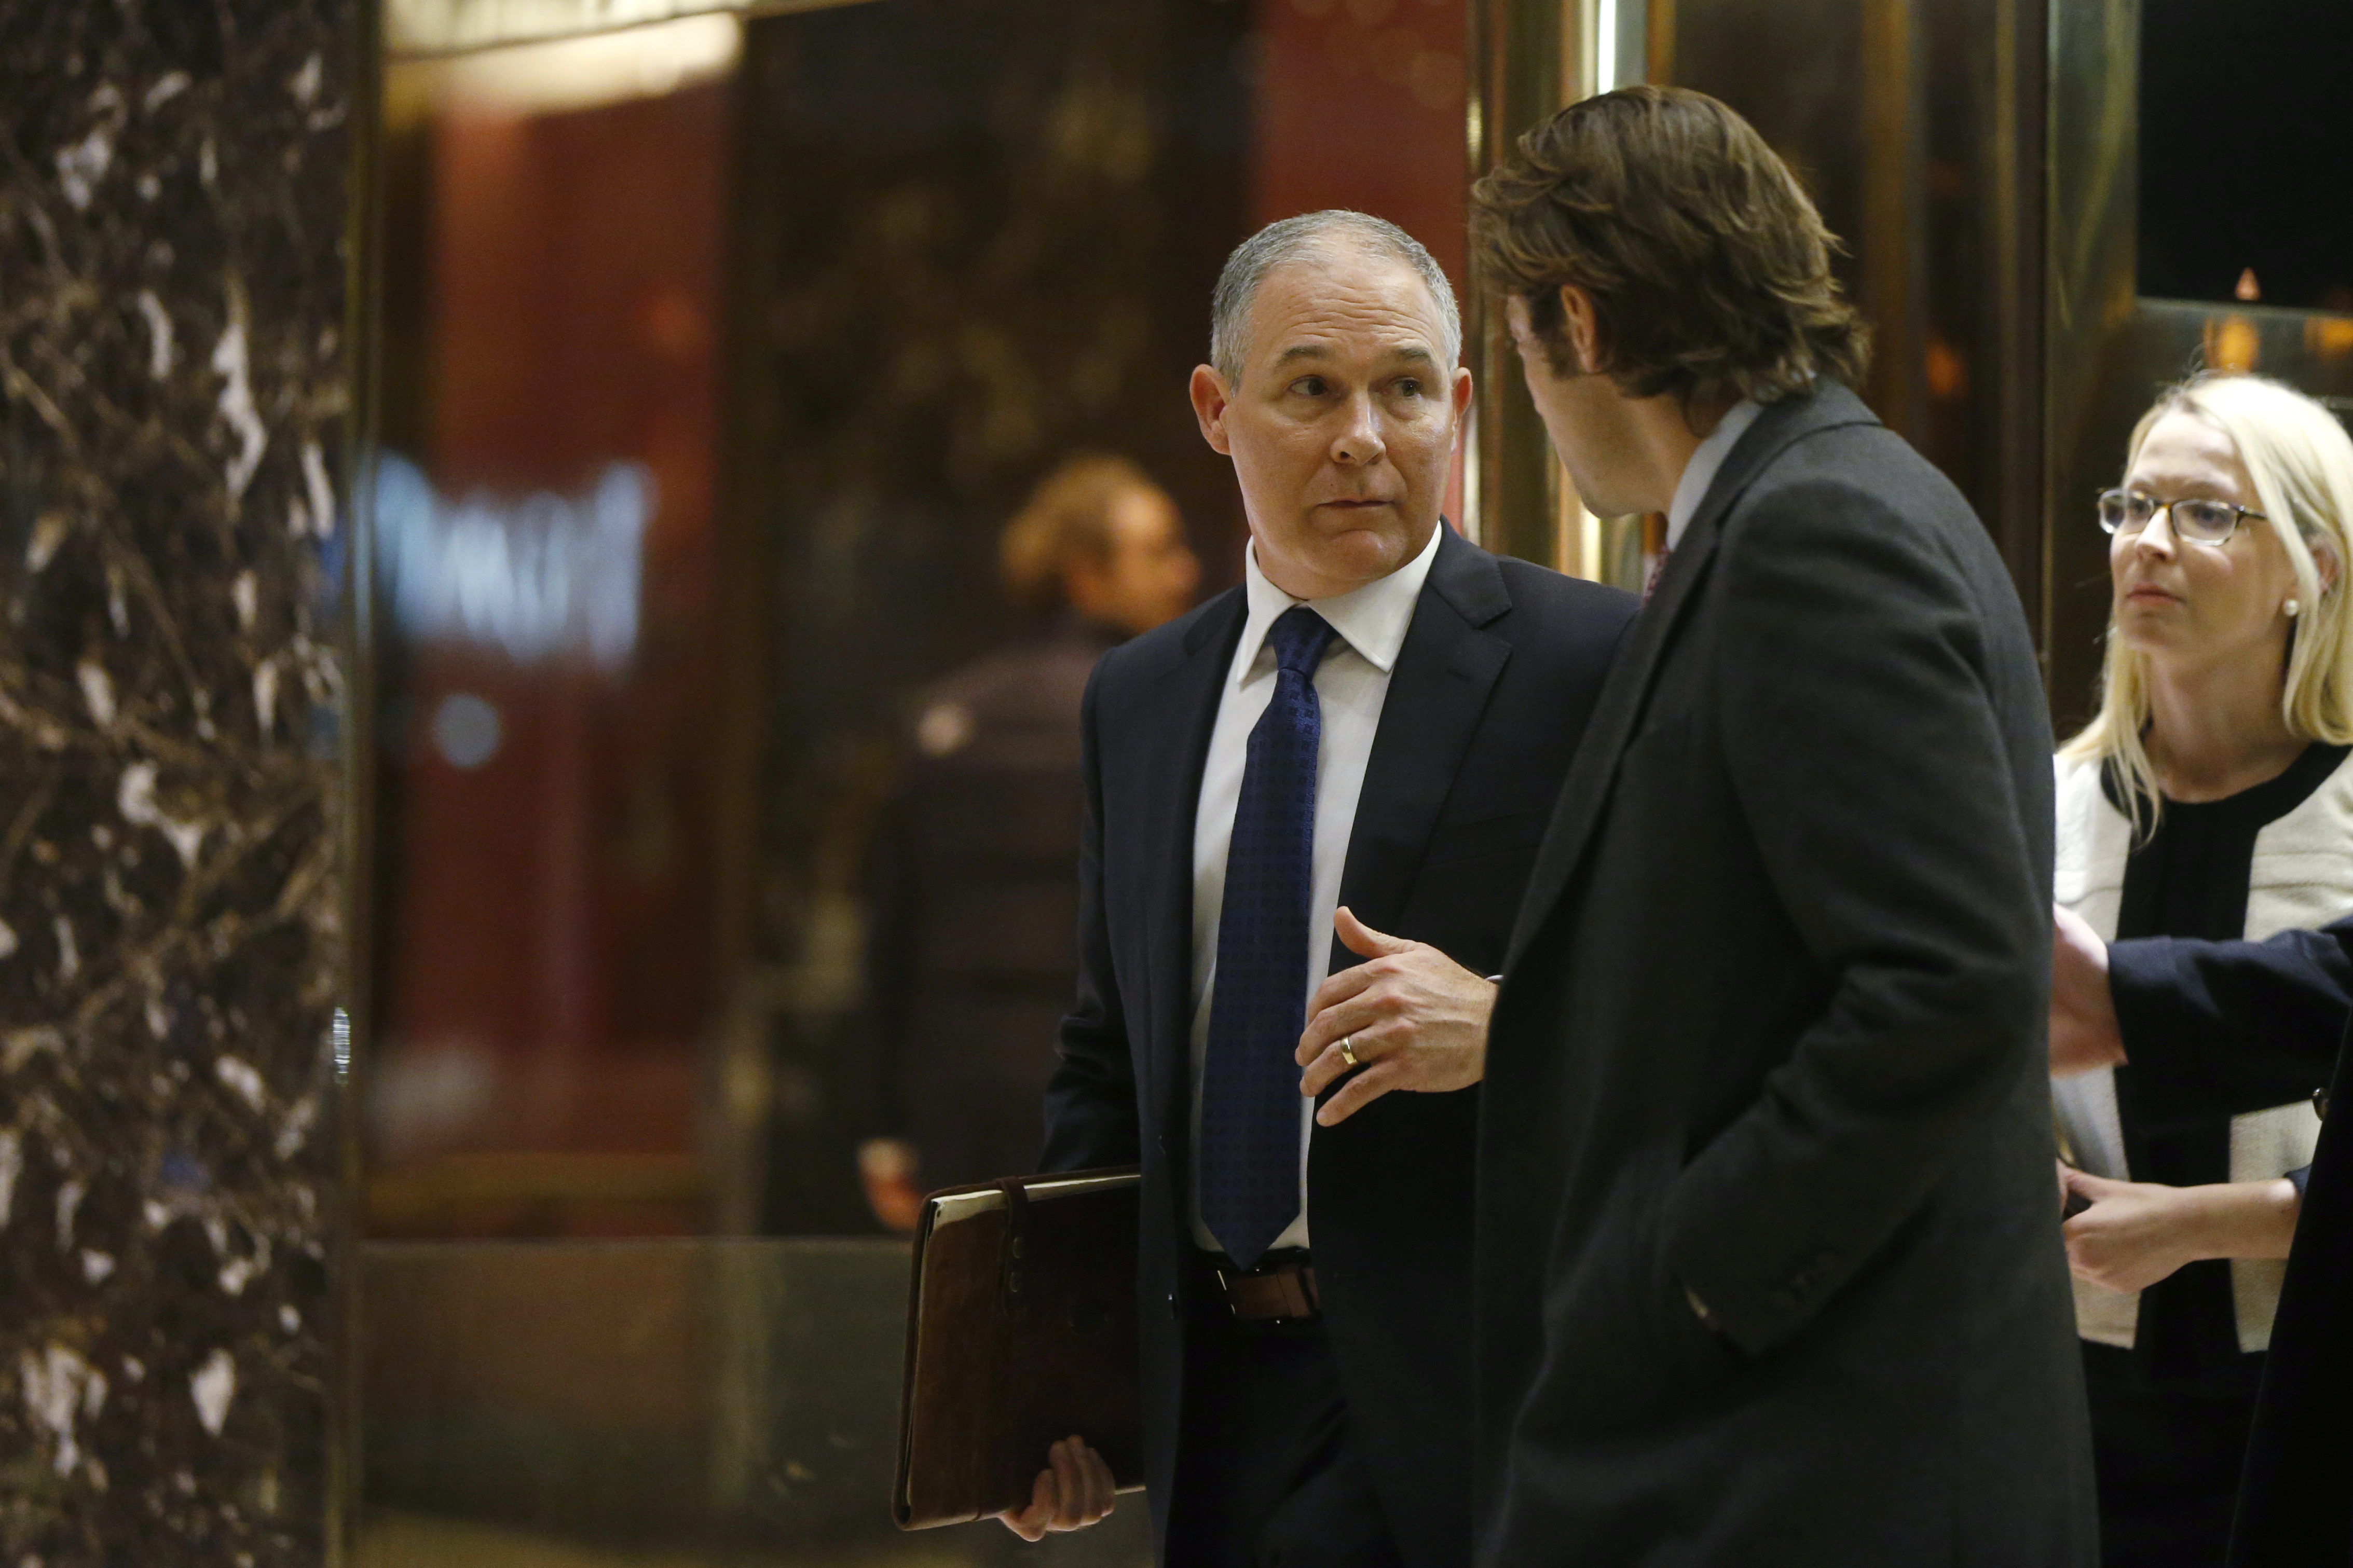 Oklahoma Attorney General Scott Pruitt departs after a meeting with U.S. President elect Donald Trump at Trump Tower New York, U.S., November 28, 2016. REUTERS/Lucas Jackson - RTSTQYT